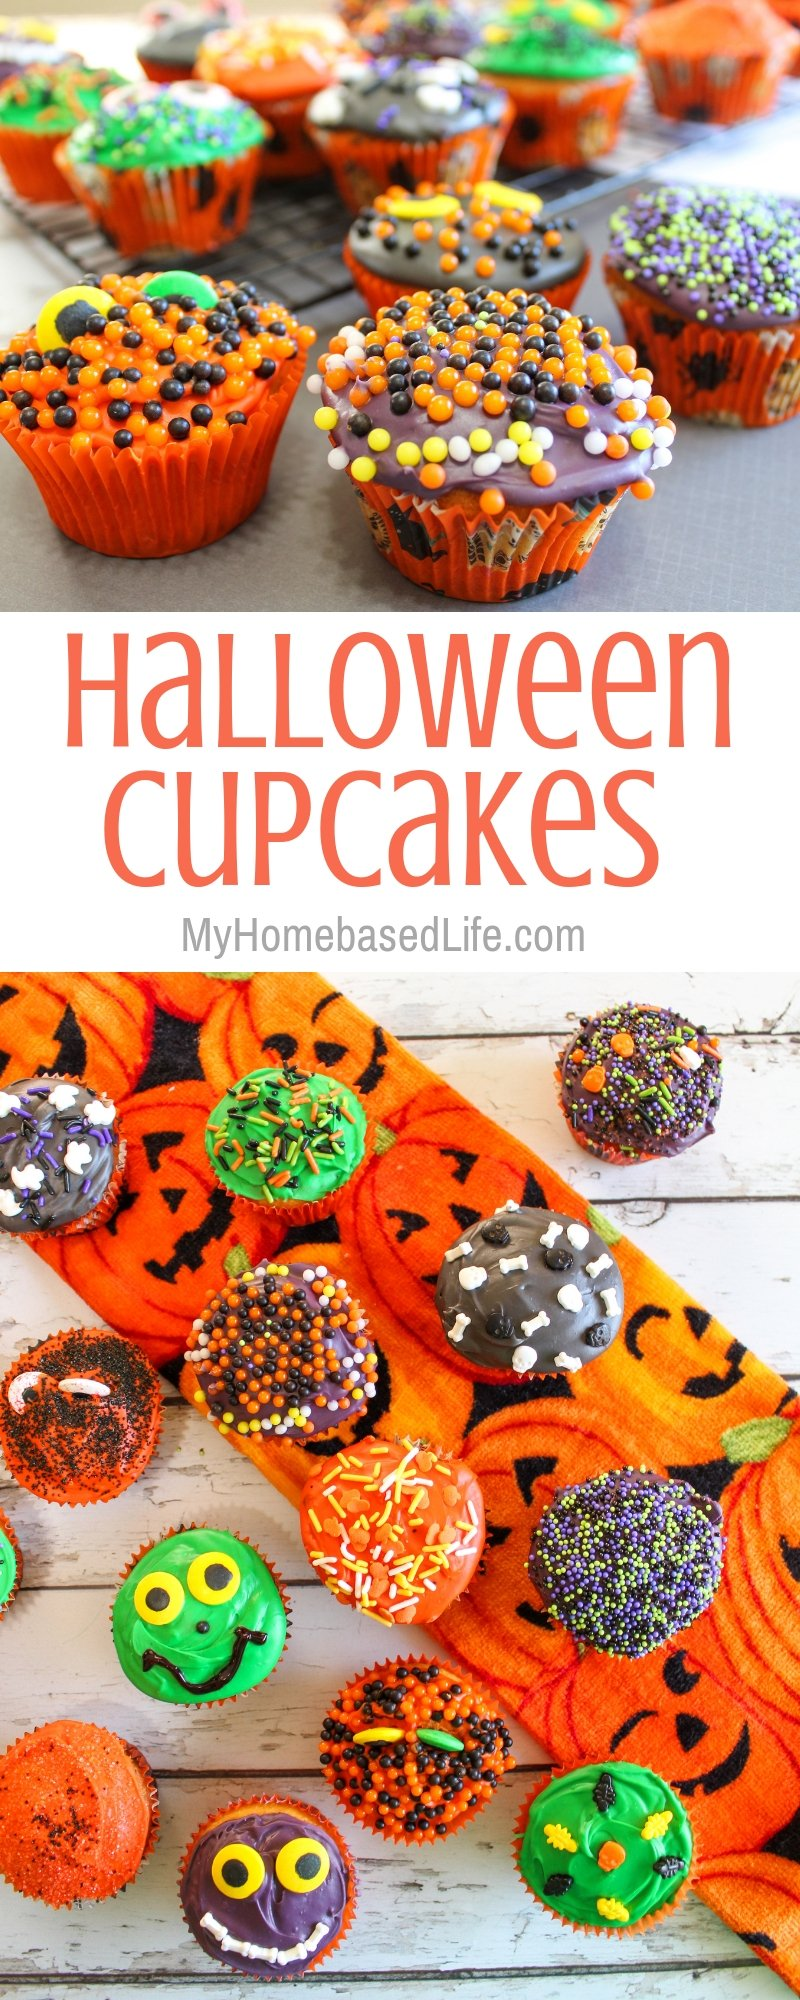 Kick your Halloween recipes into cute gear with these Halloween Cupcakes for kids. Not spooky but still Halloween themed desserts! #halloween #cupcakes #desserts #myhomebasedlife   Dessert Recipes   Halloween Recipes   Halloween Foods   Halloween Cupcakes  